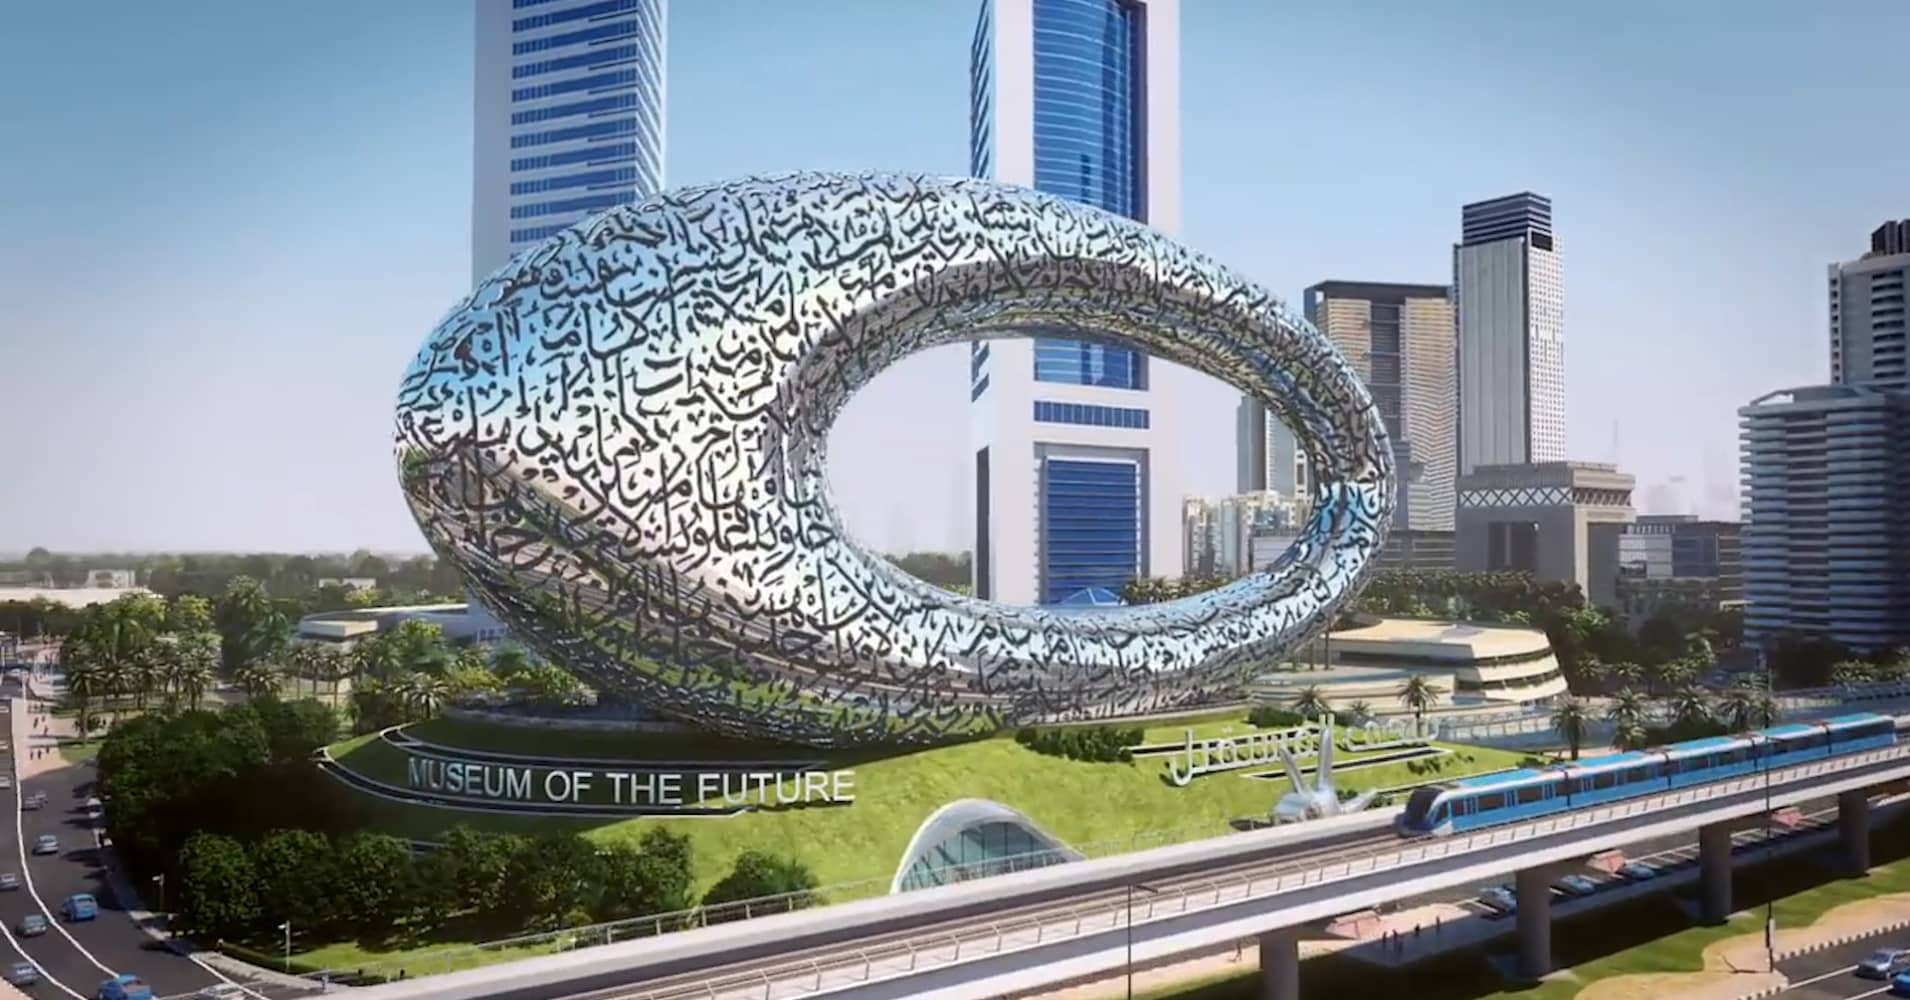 Museum of the Future in Dubai is an architectural wonder